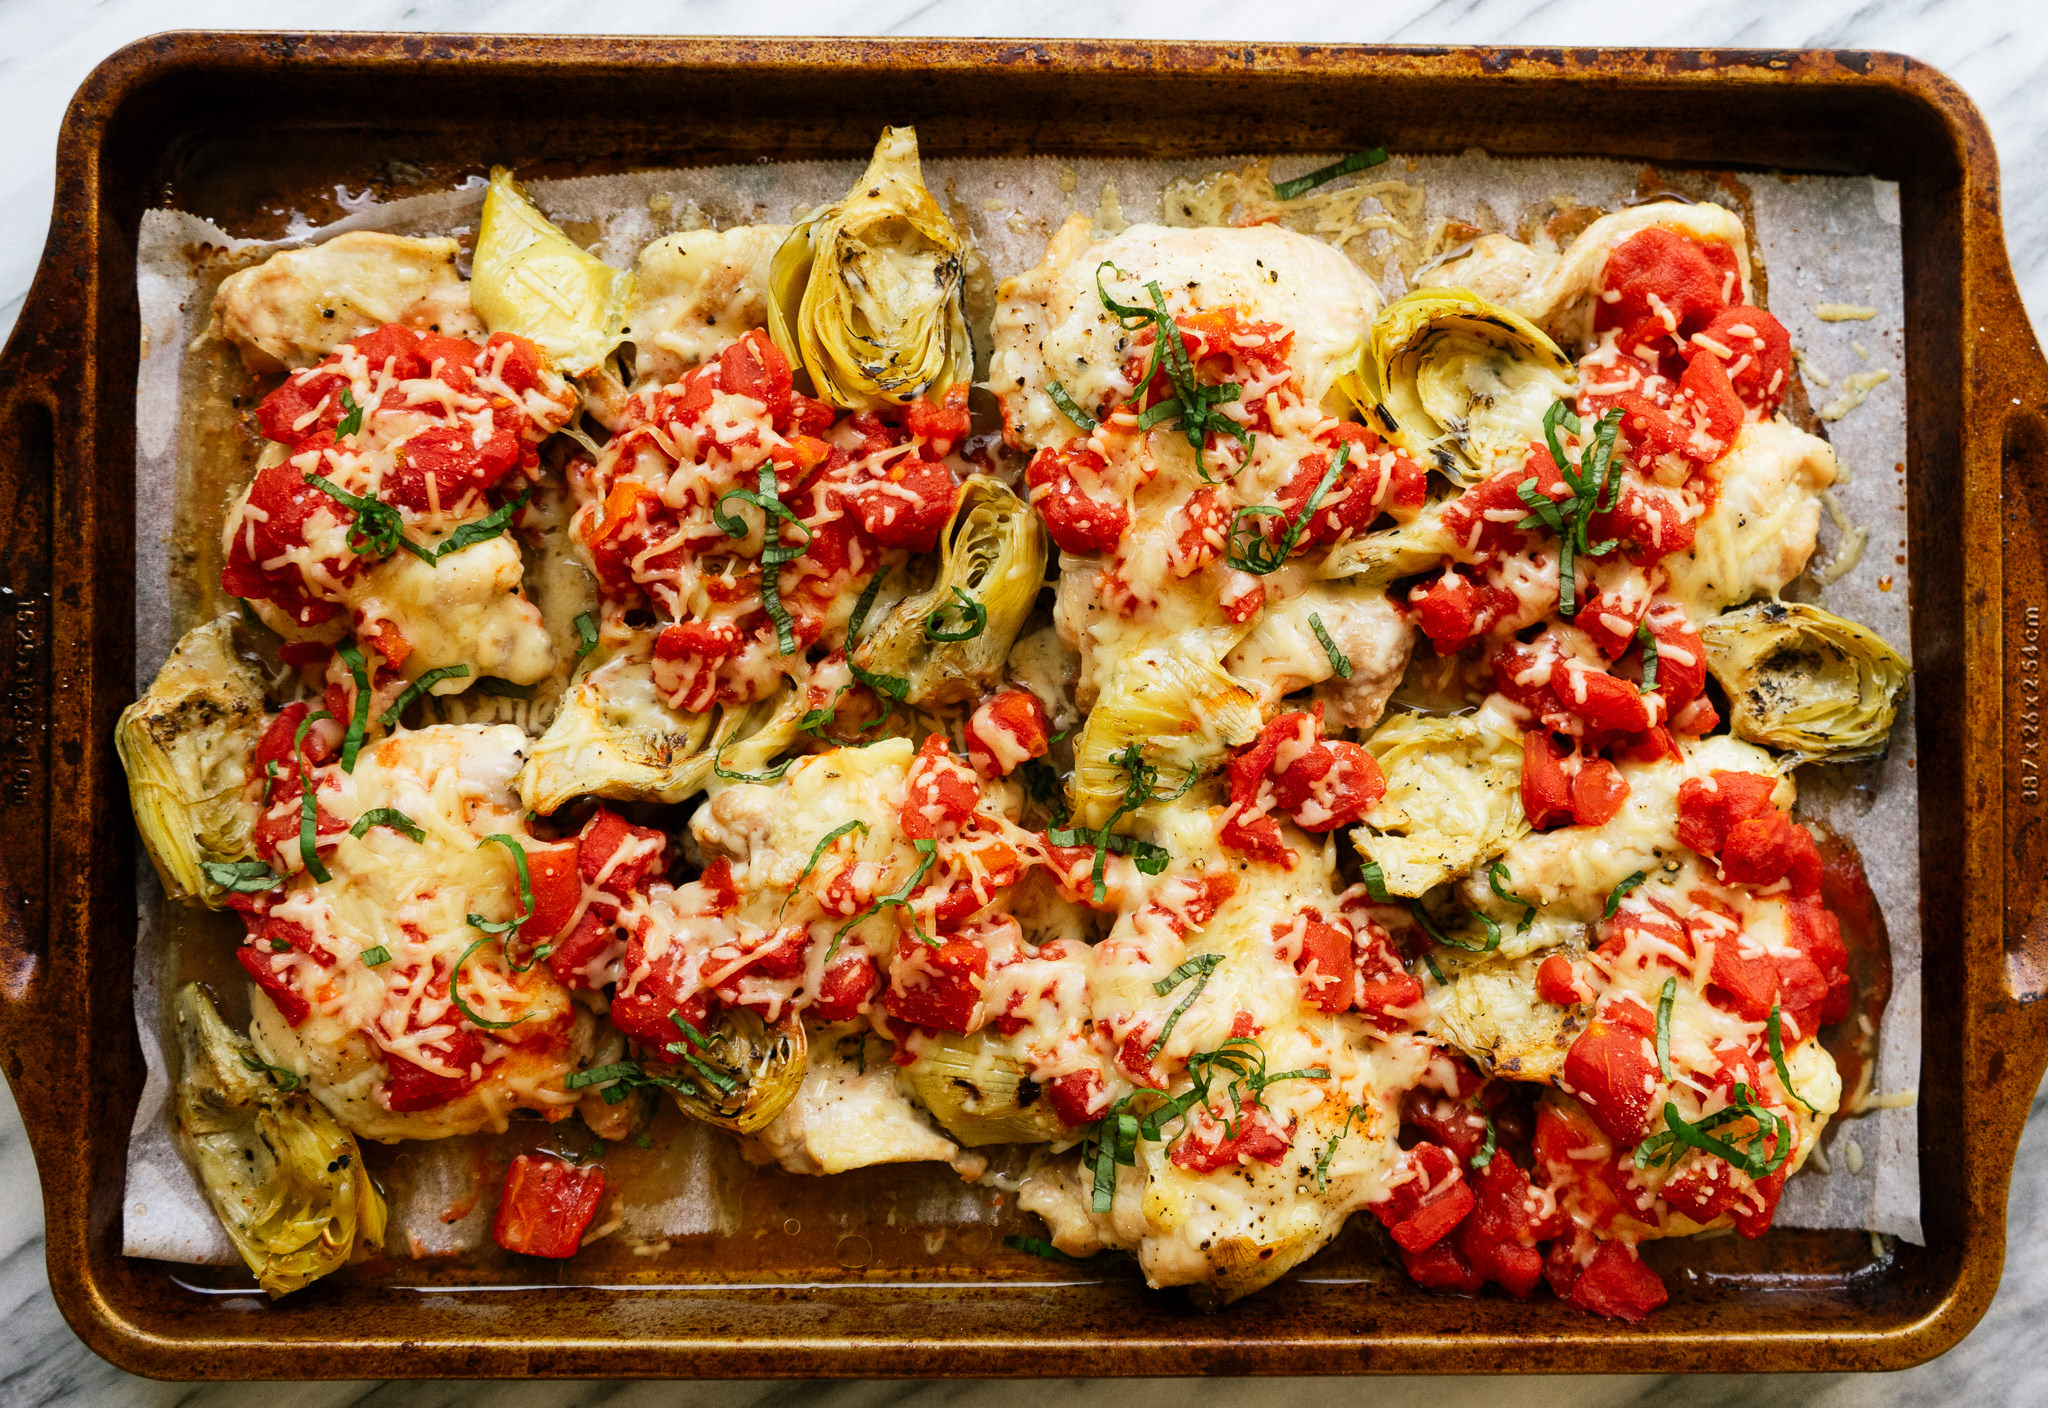 Sheet pan tomato and artichoke chicken is a delicious, simple, easy and healthy one pan meal. This easy weeknight dinner option is low carb friendly and comes together in about 30 minutes.